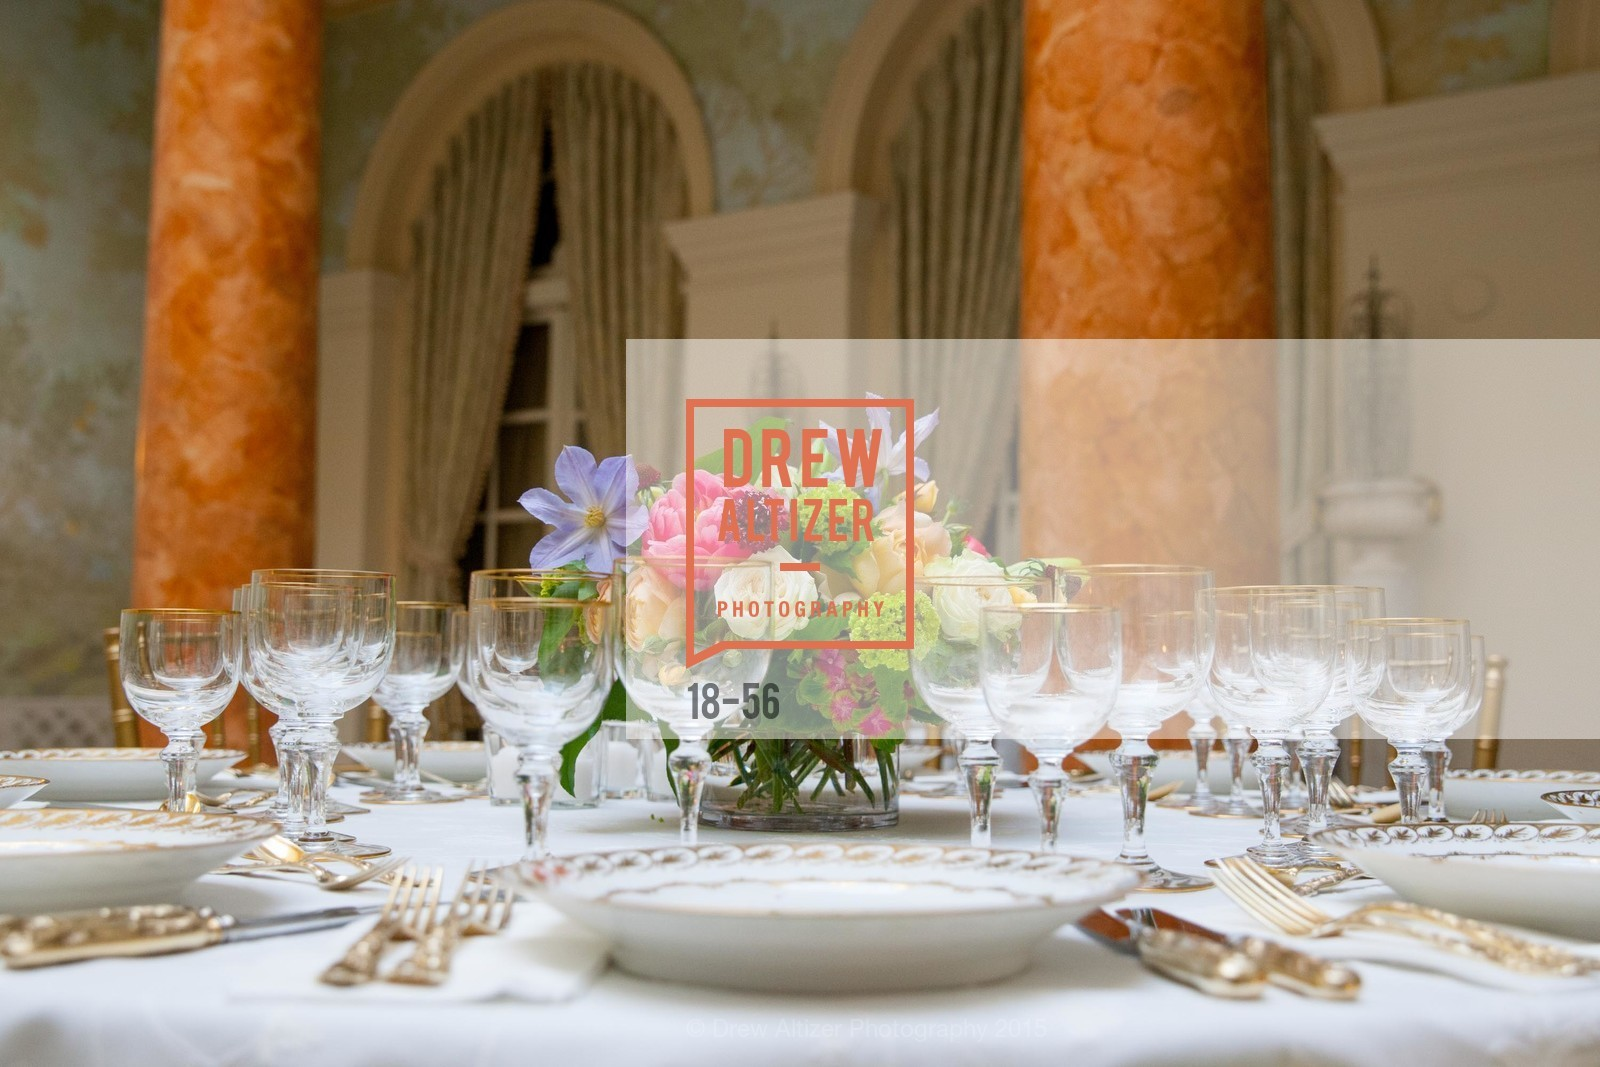 Extras, Getty Hosts the Leakey Foundation, April 23rd, 2015, Photo,Drew Altizer, Drew Altizer Photography, full-service agency, private events, San Francisco photographer, photographer california